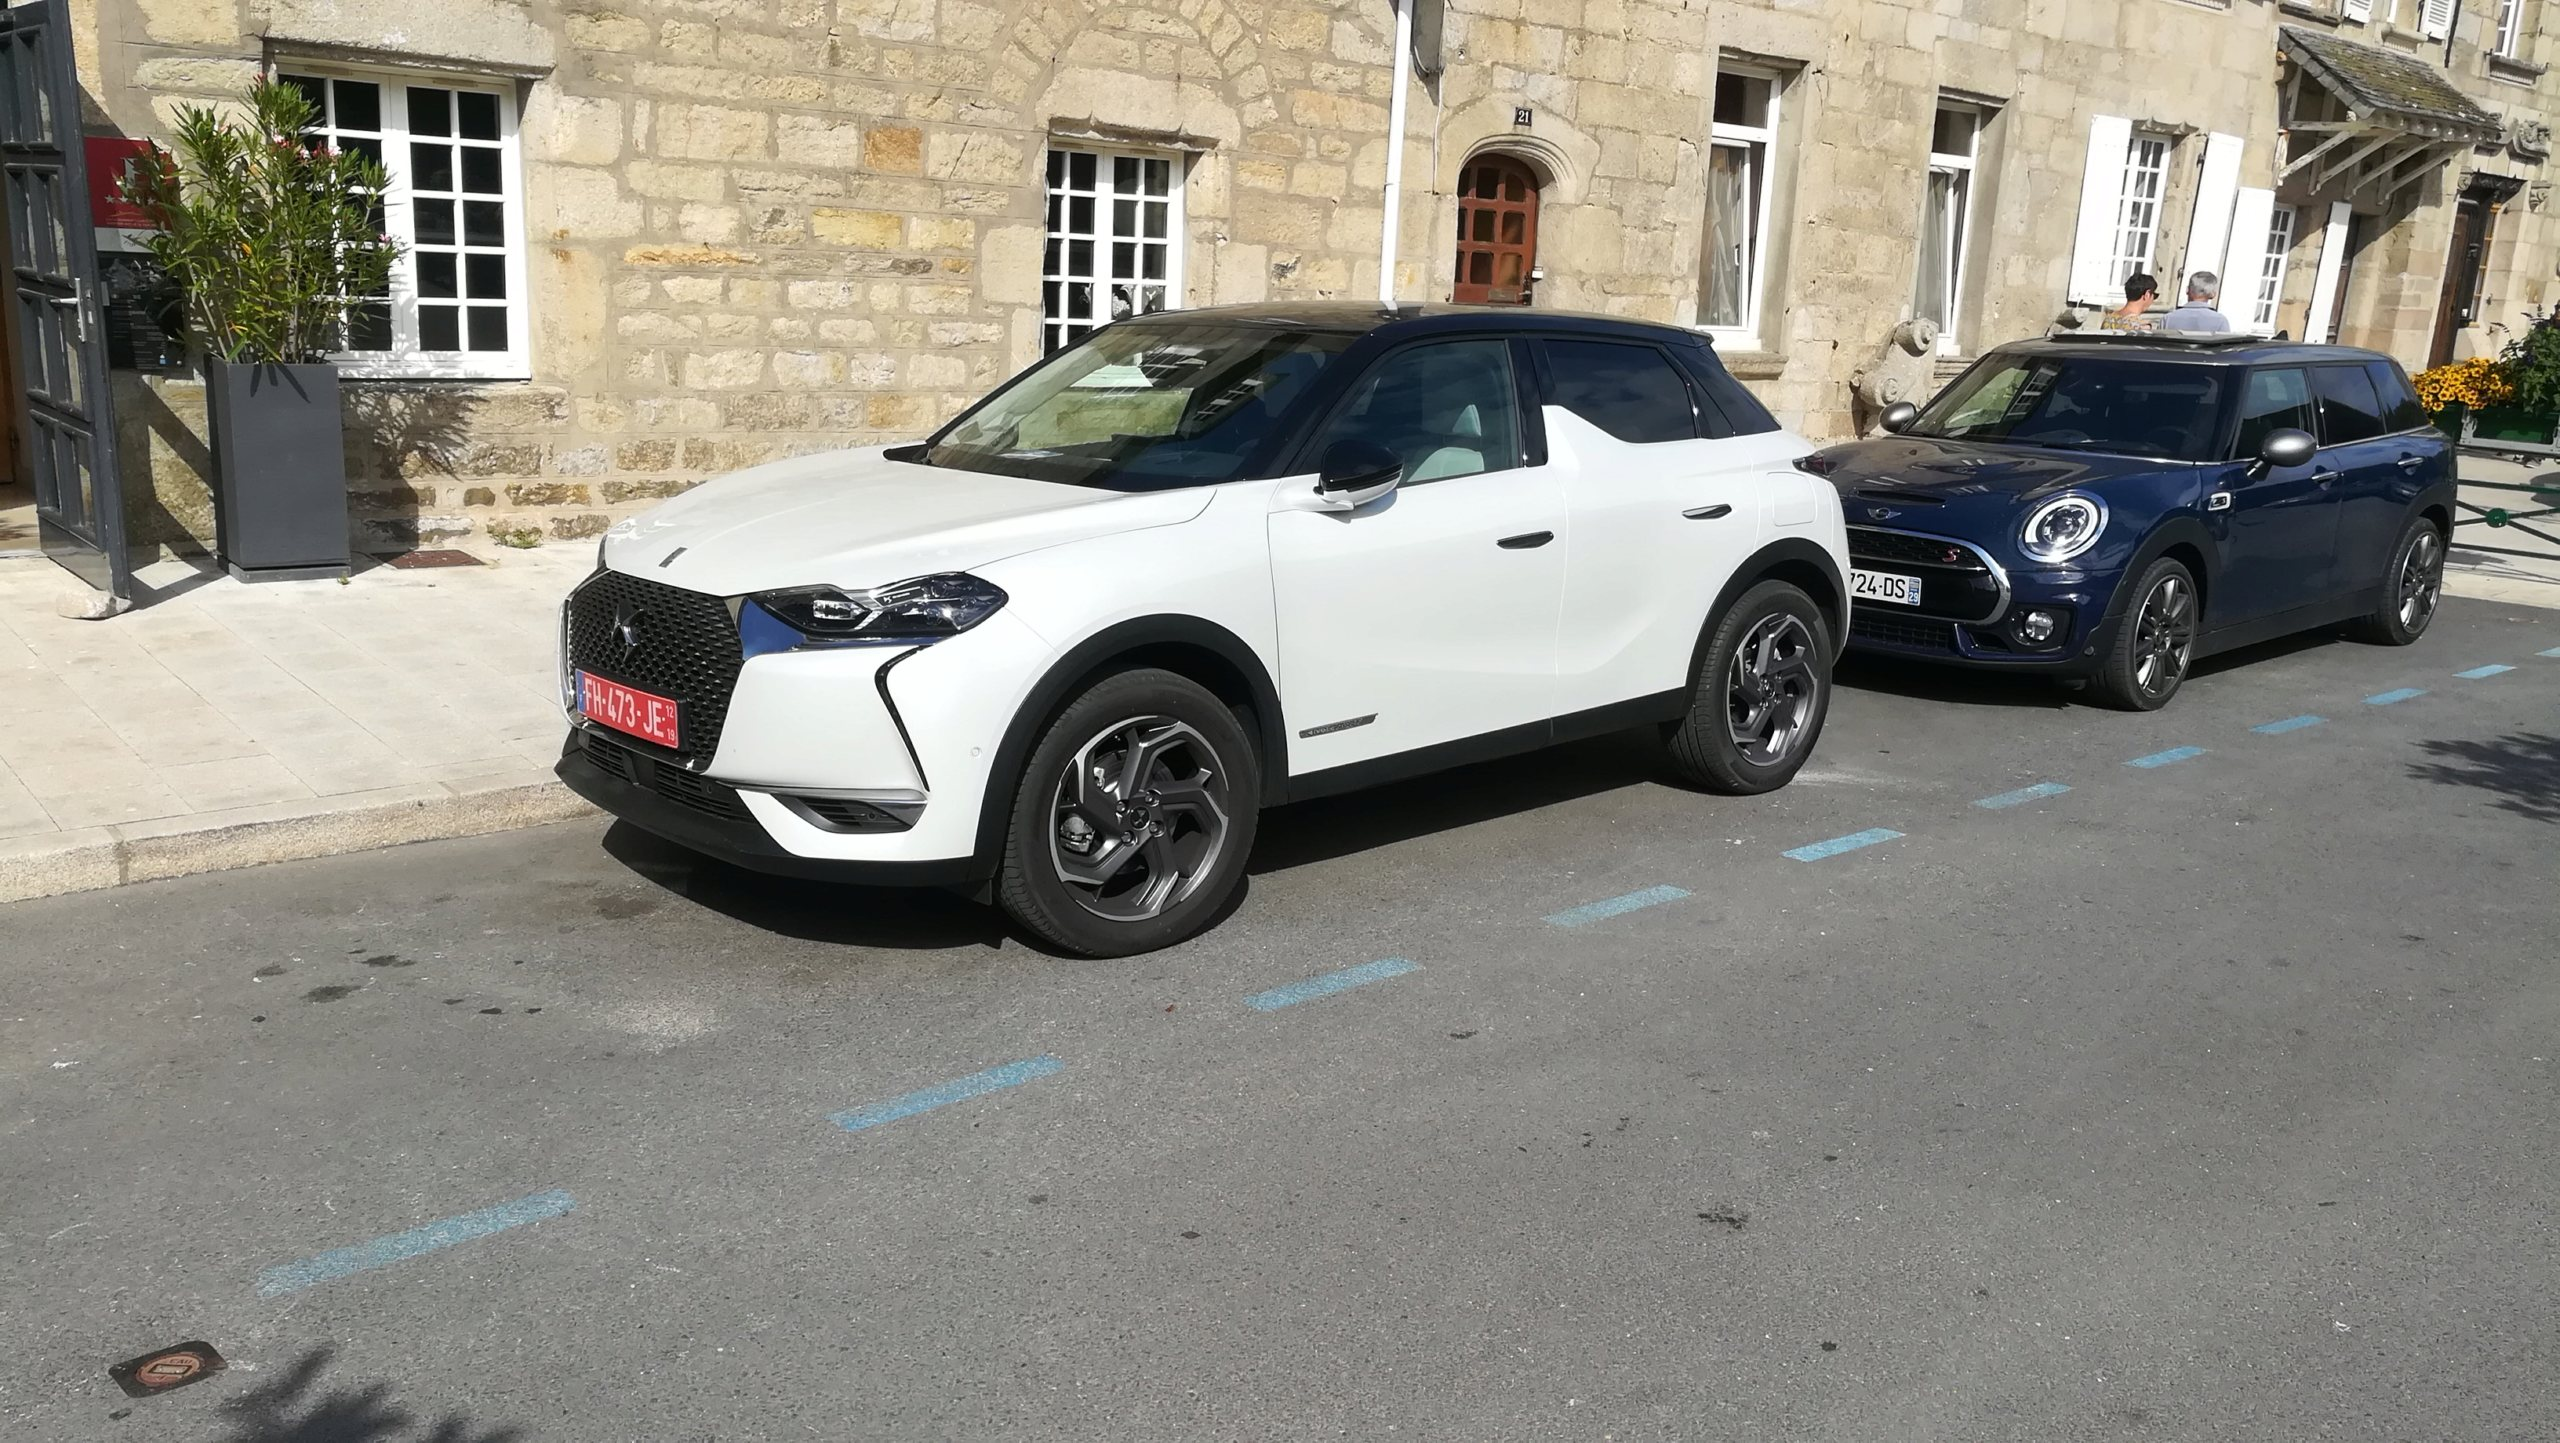 2018 - [DS Automobiles] DS 3 Crossback (D34) - Page 40 Img_2132